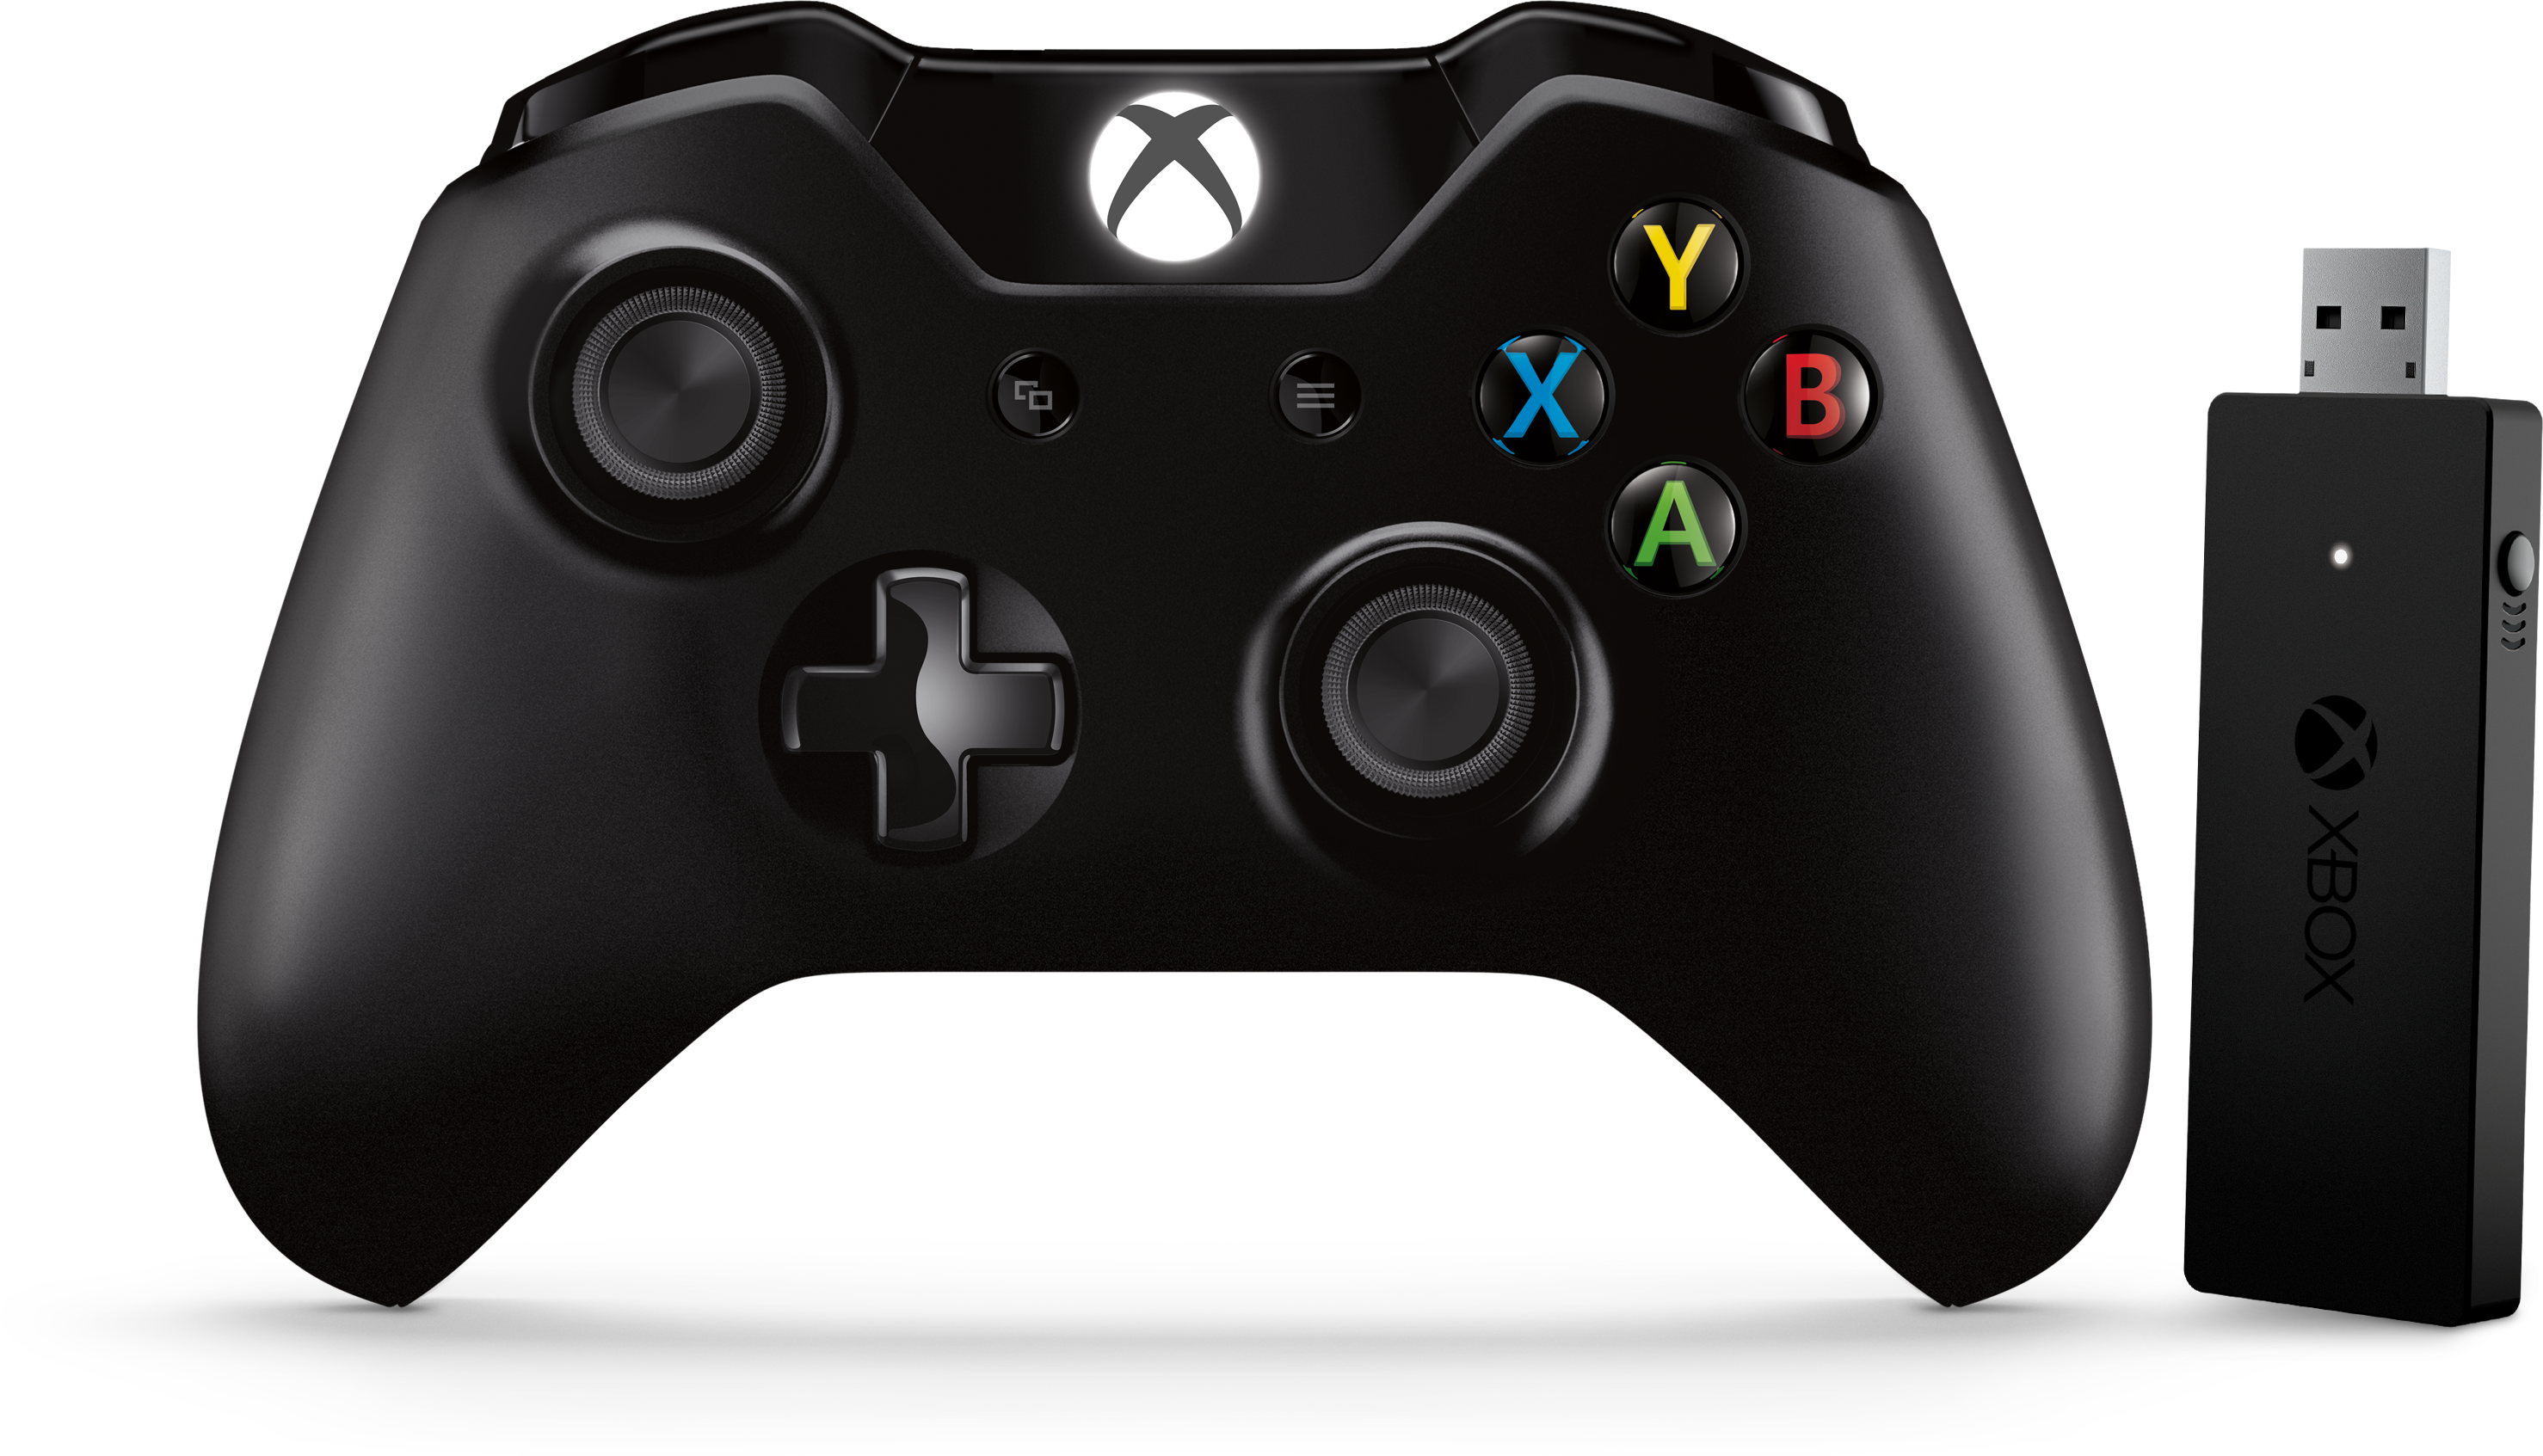 Xbox Controller and Wireless Adapter for Windows | Manette Xbox et adaptateur sans fil pour Windows